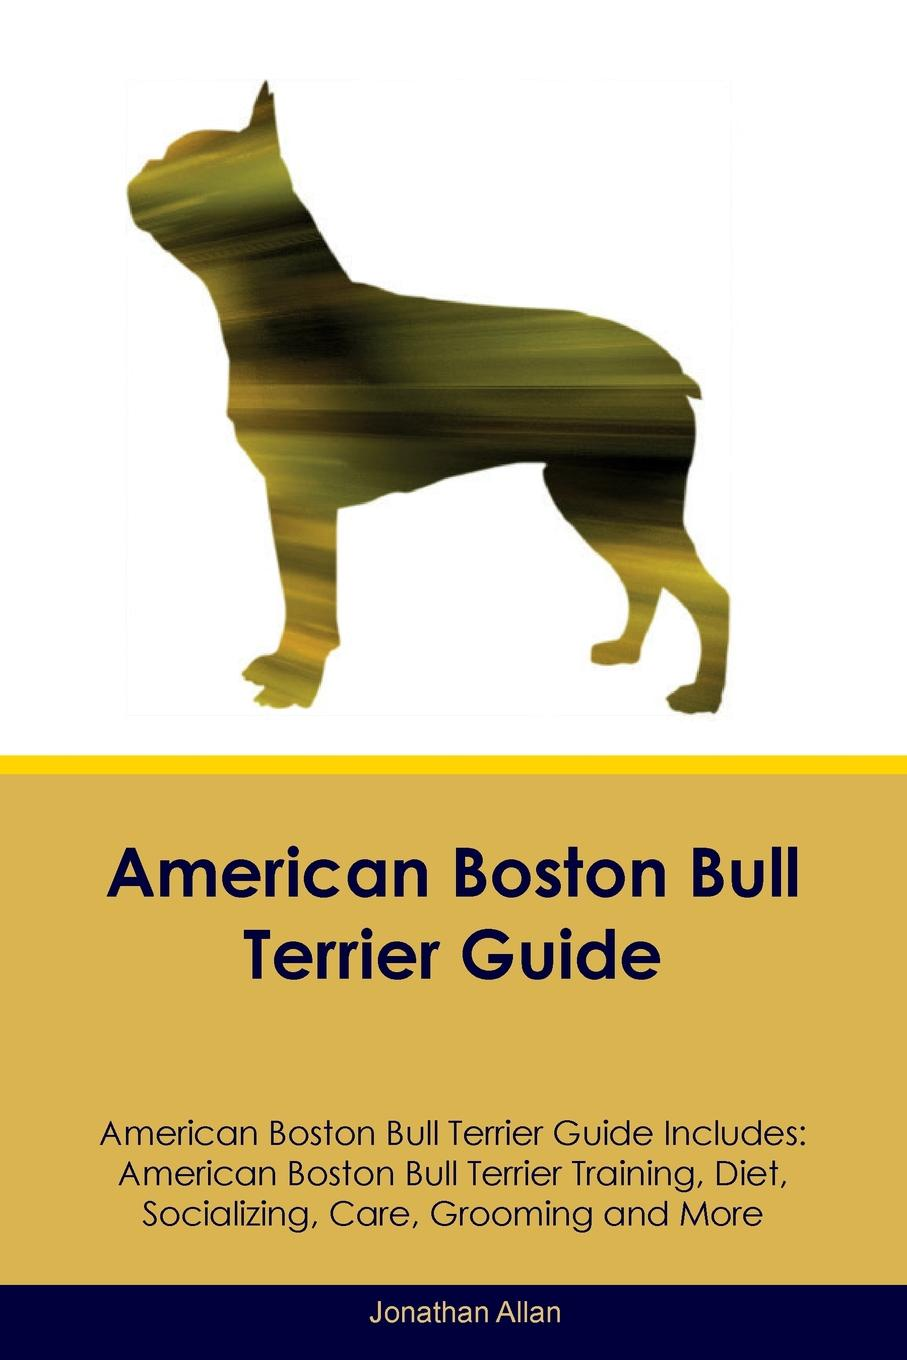 Jonathan Allan American Boston Bull Terrier Guide American Boston Bull Terrier Guide Includes. American Boston Bull Terrier Training, Diet, Socializing, Care, Grooming, Breeding and More